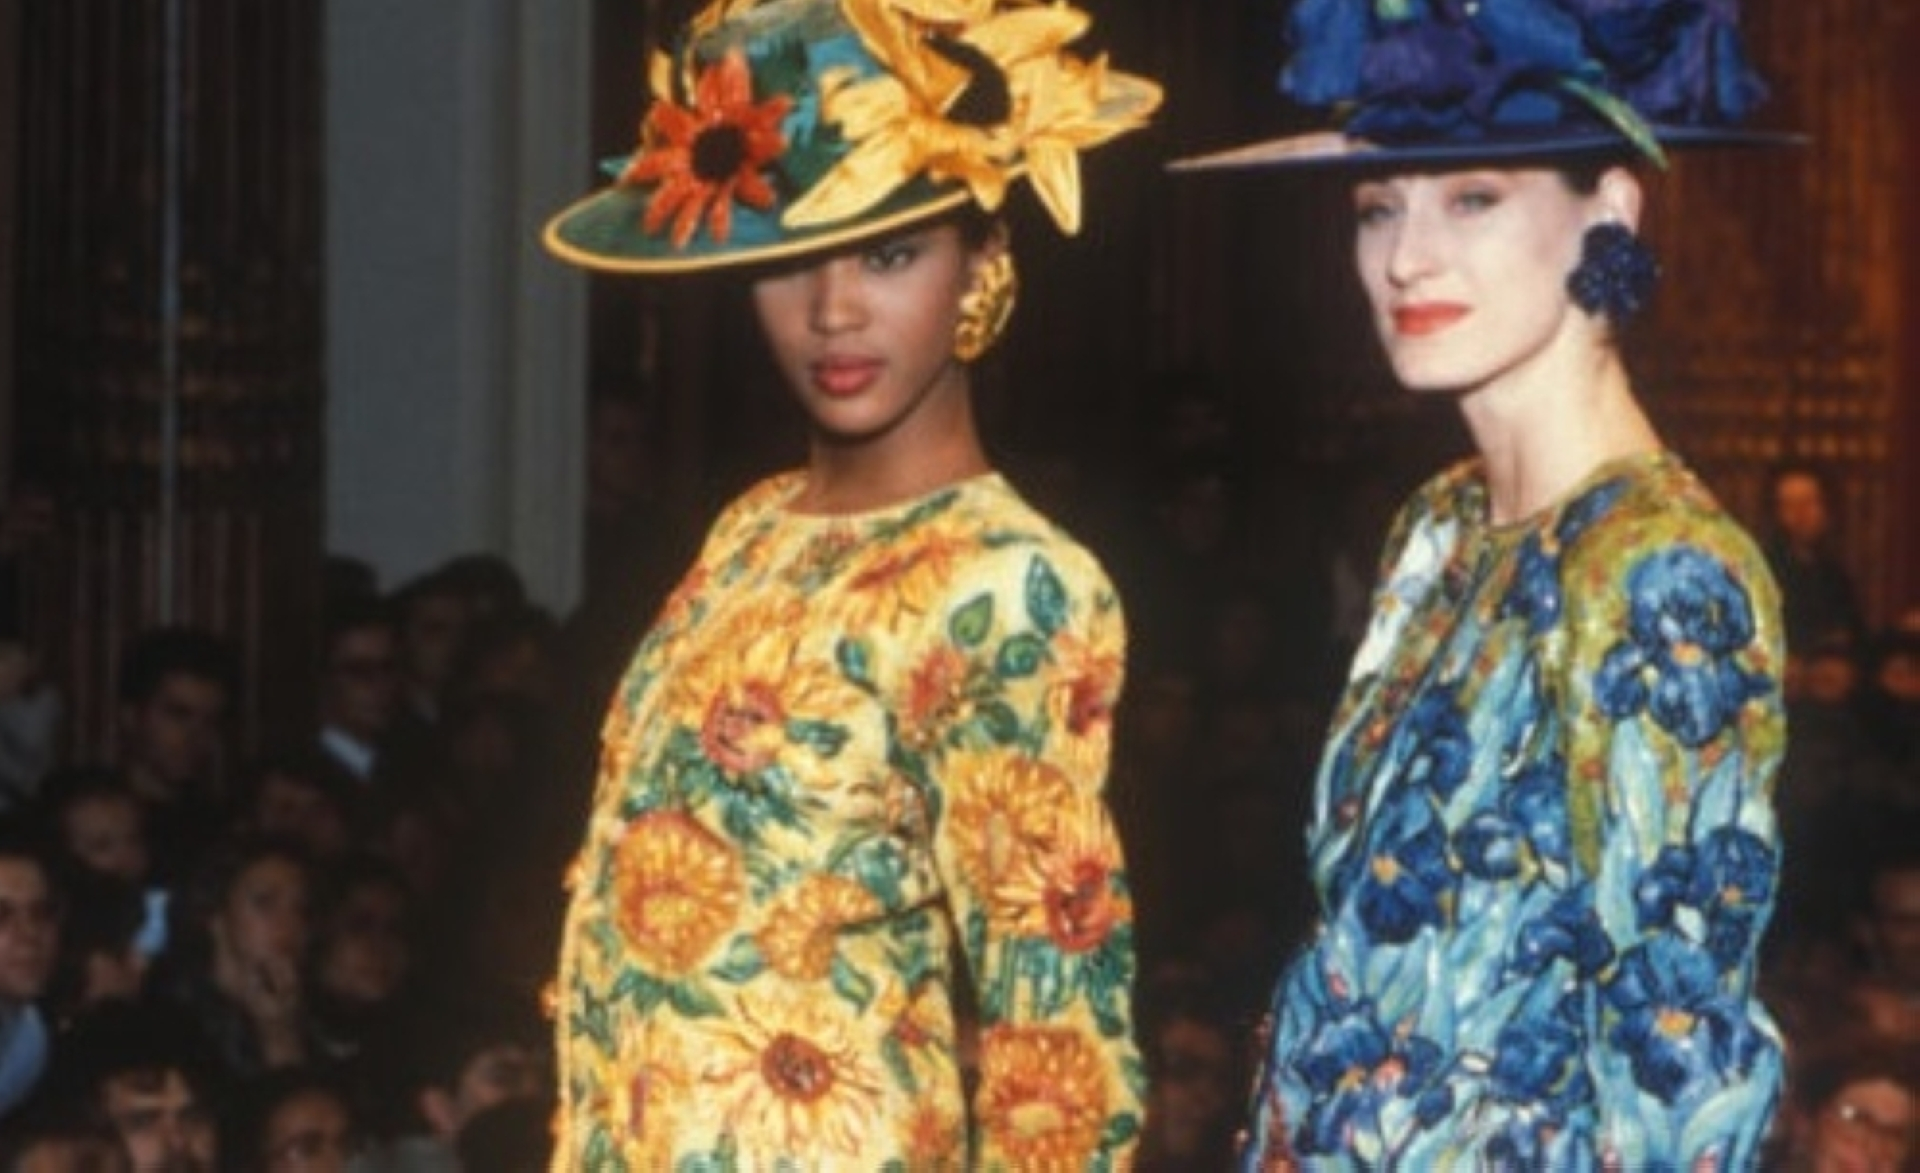 Iconic Van Gogh-inspired jacket by Yves Saint Laurent goes under the hammer - The Star Online